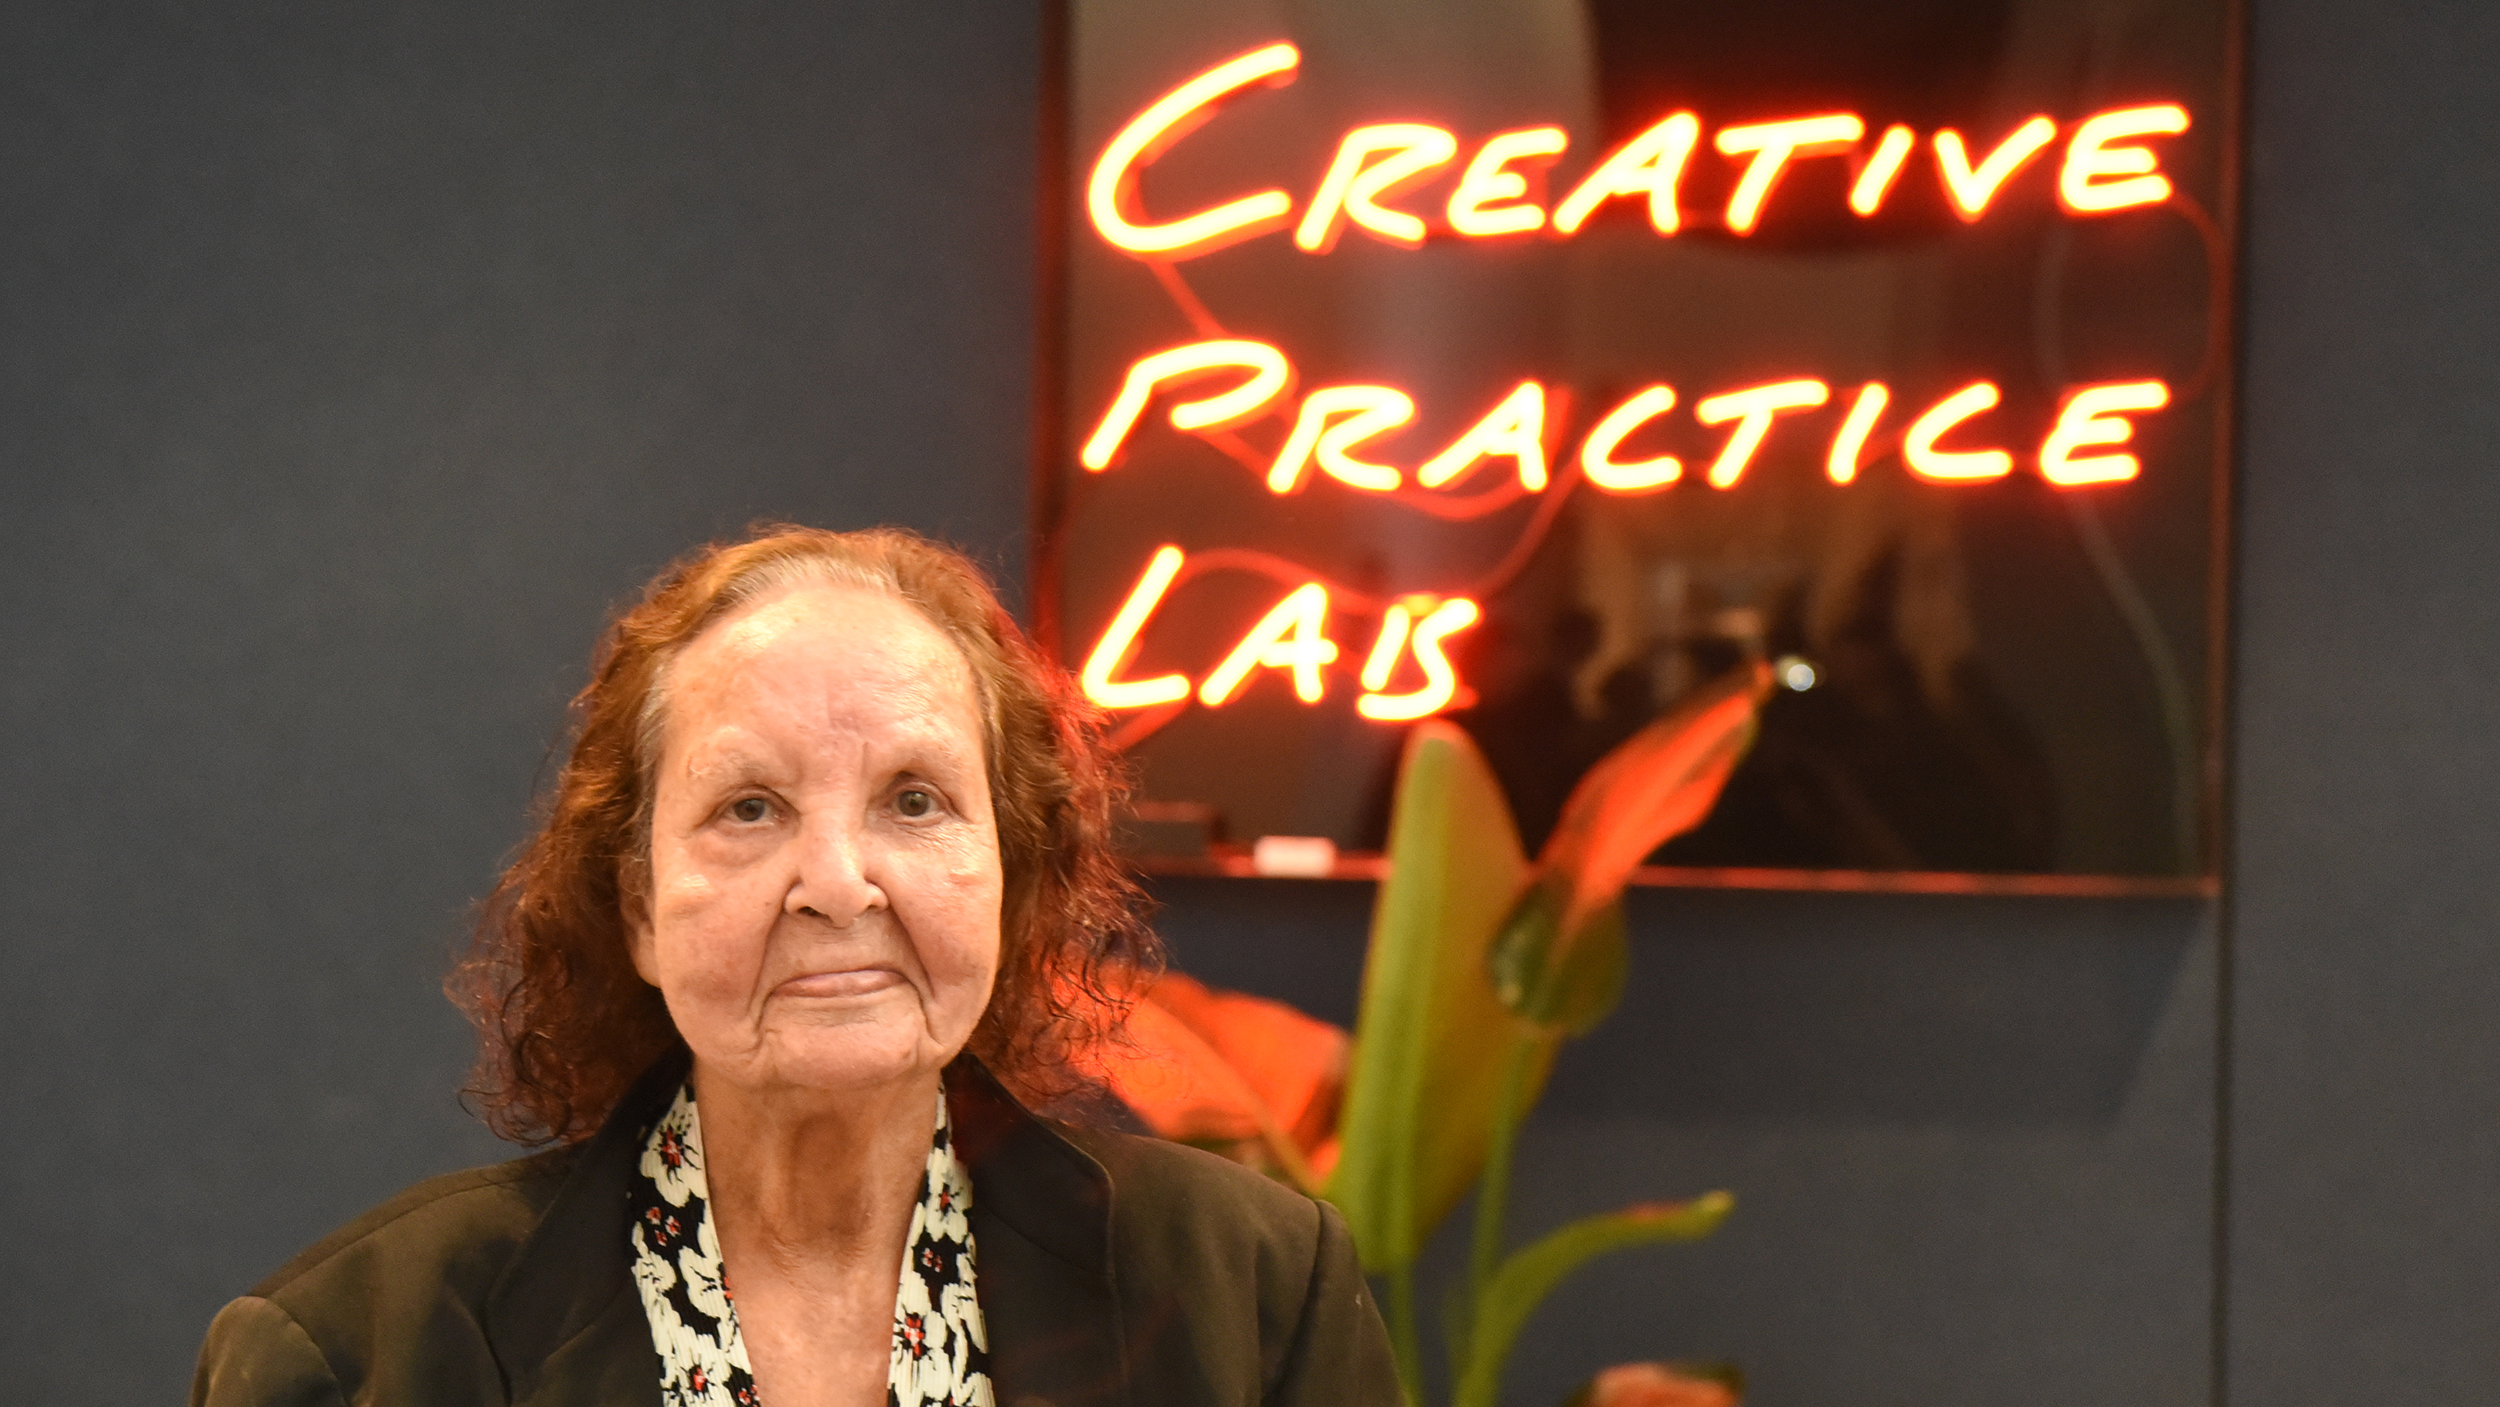 Artist Esme Timbery in front of neon sign